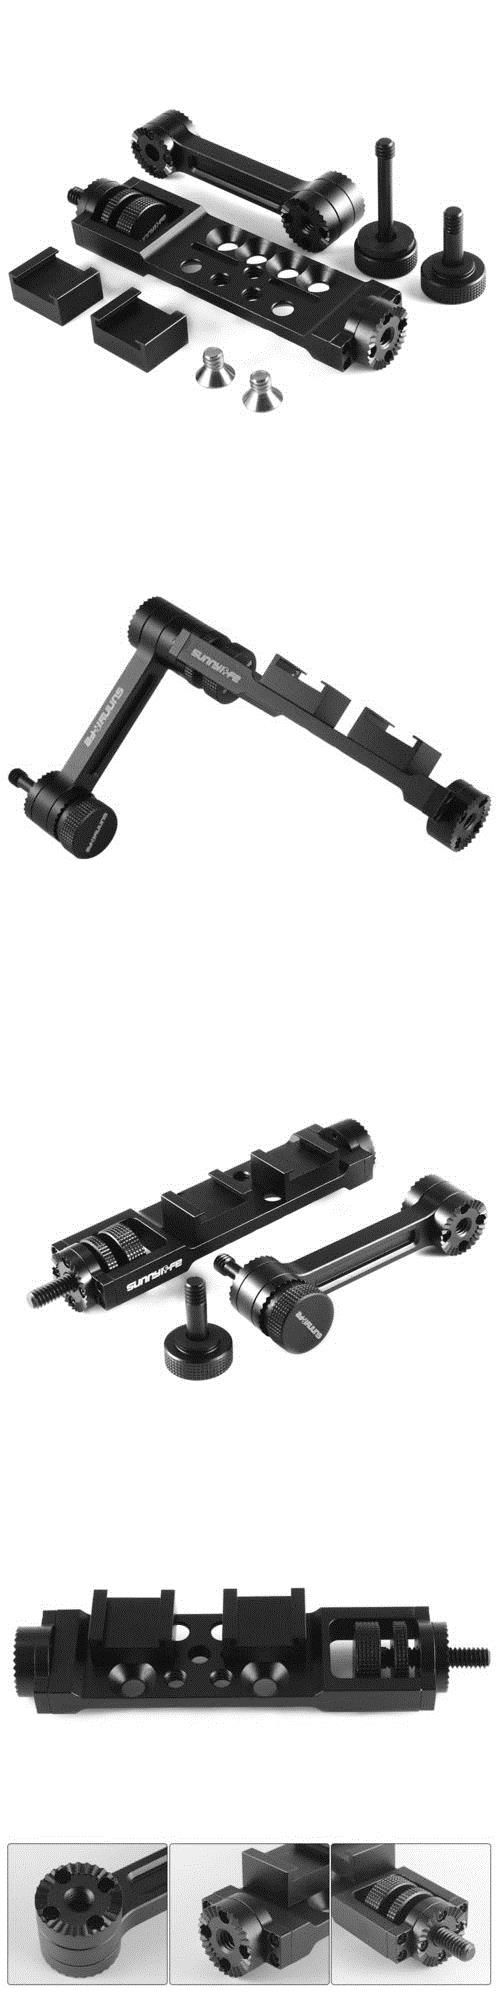 Other RC Parts and Accs 182213: Pro Version Universal Frame Mount + Extended Arm Accessories For Dji Osmo Rc446 -> BUY IT NOW ONLY: $33.99 on eBay!